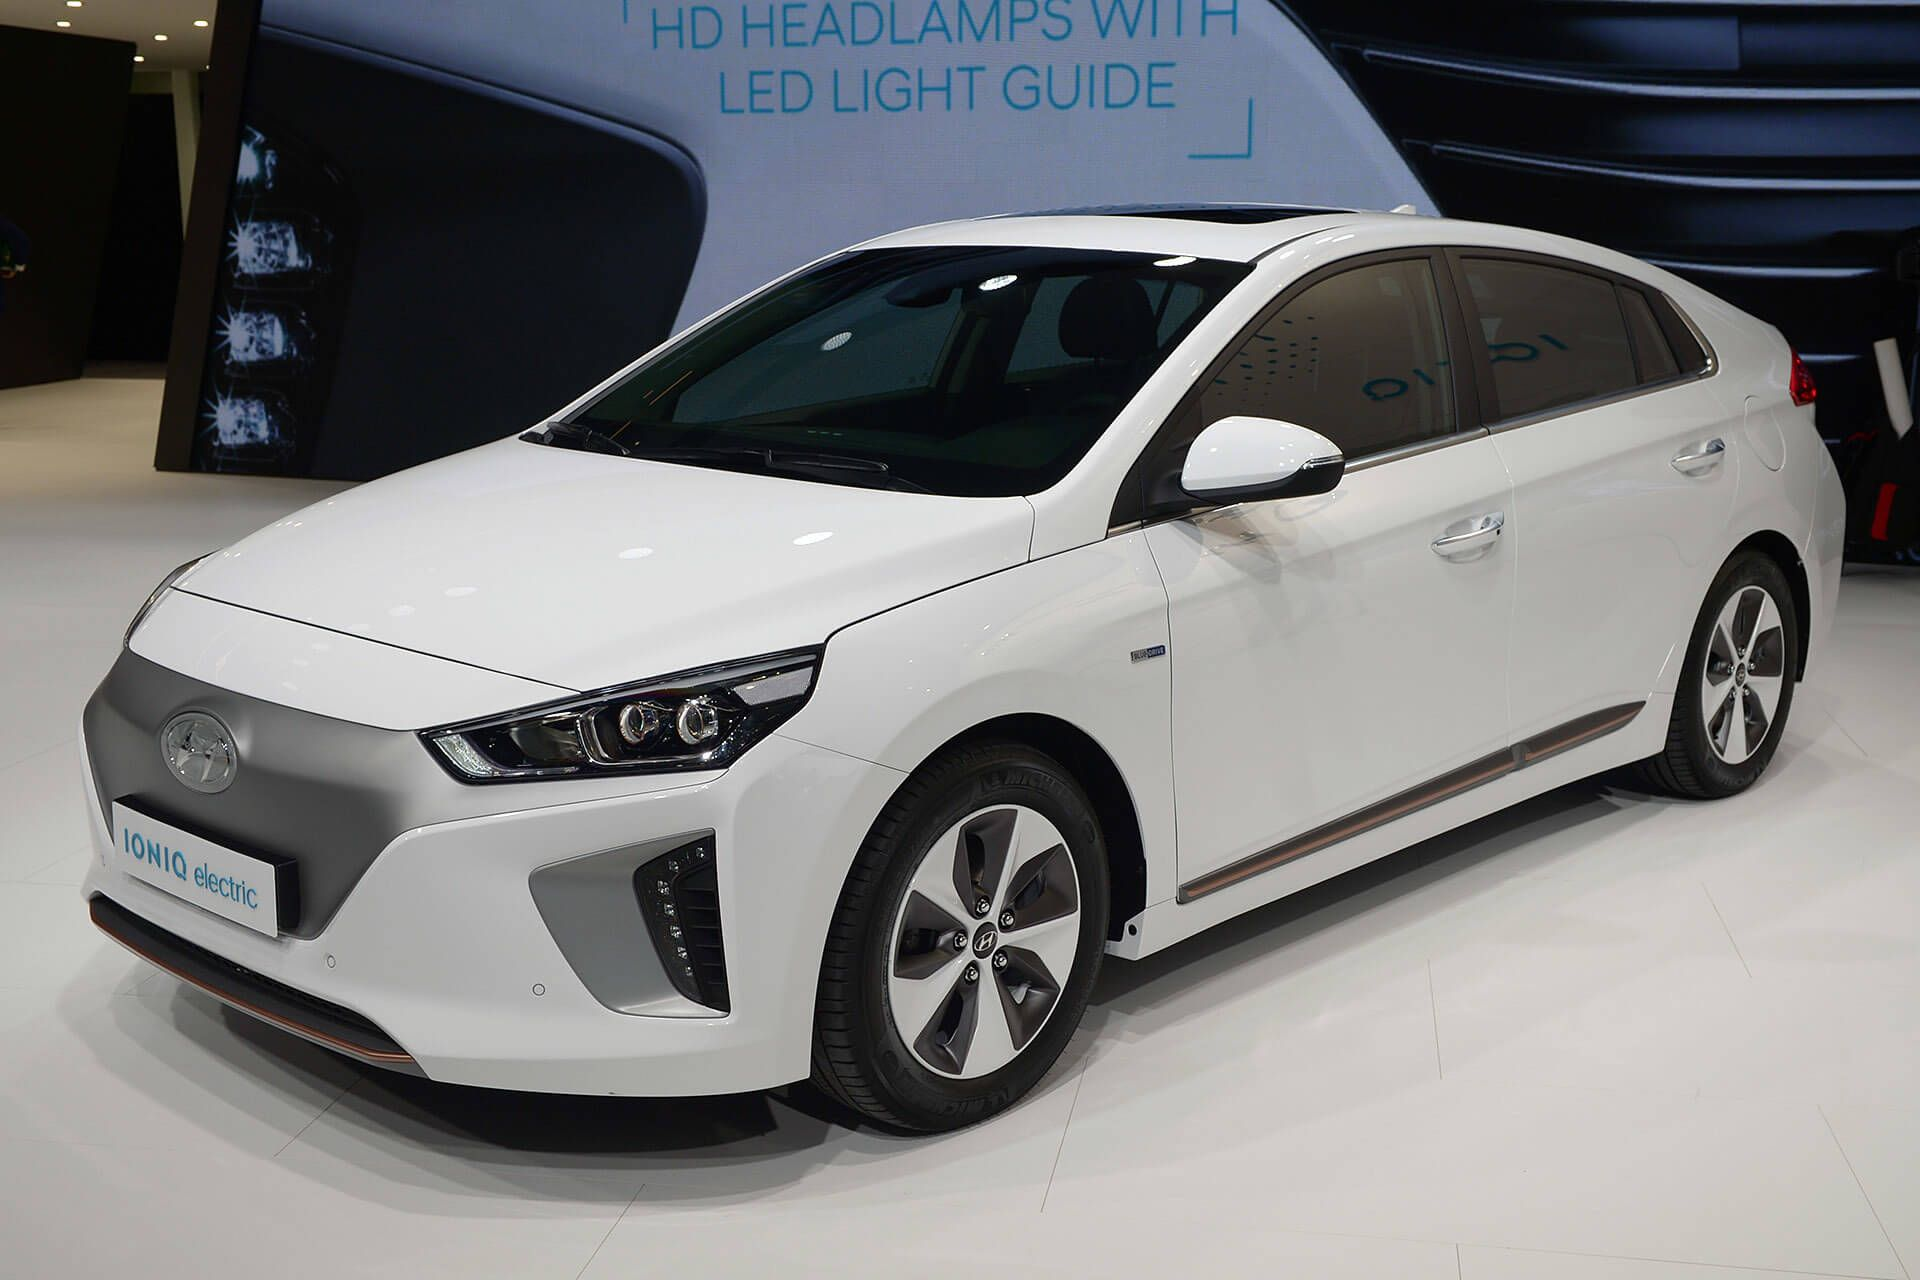 Hyundai Ioniq EV panned to go on sale in the US by the